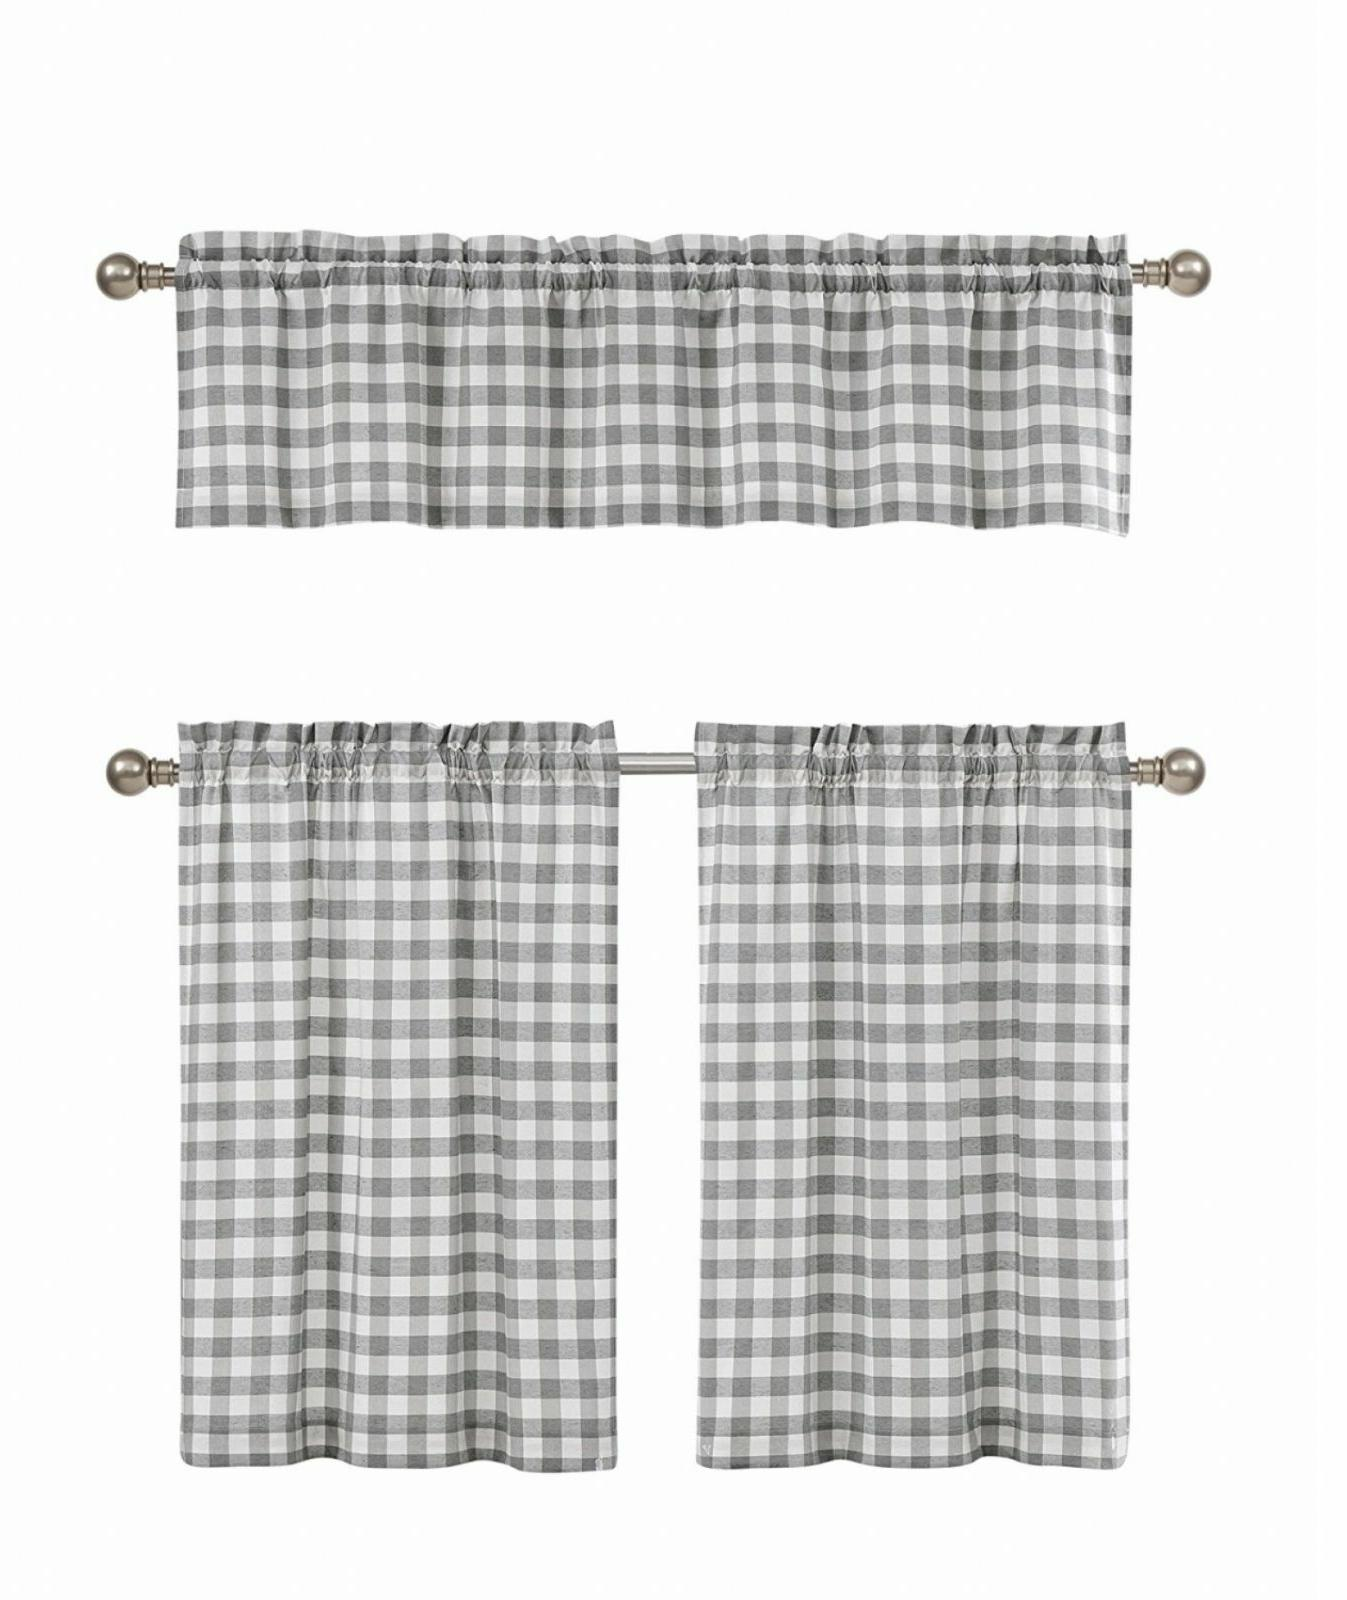 Gray & White Cotton Blend Gingham Tartan Country Plaid Kitch